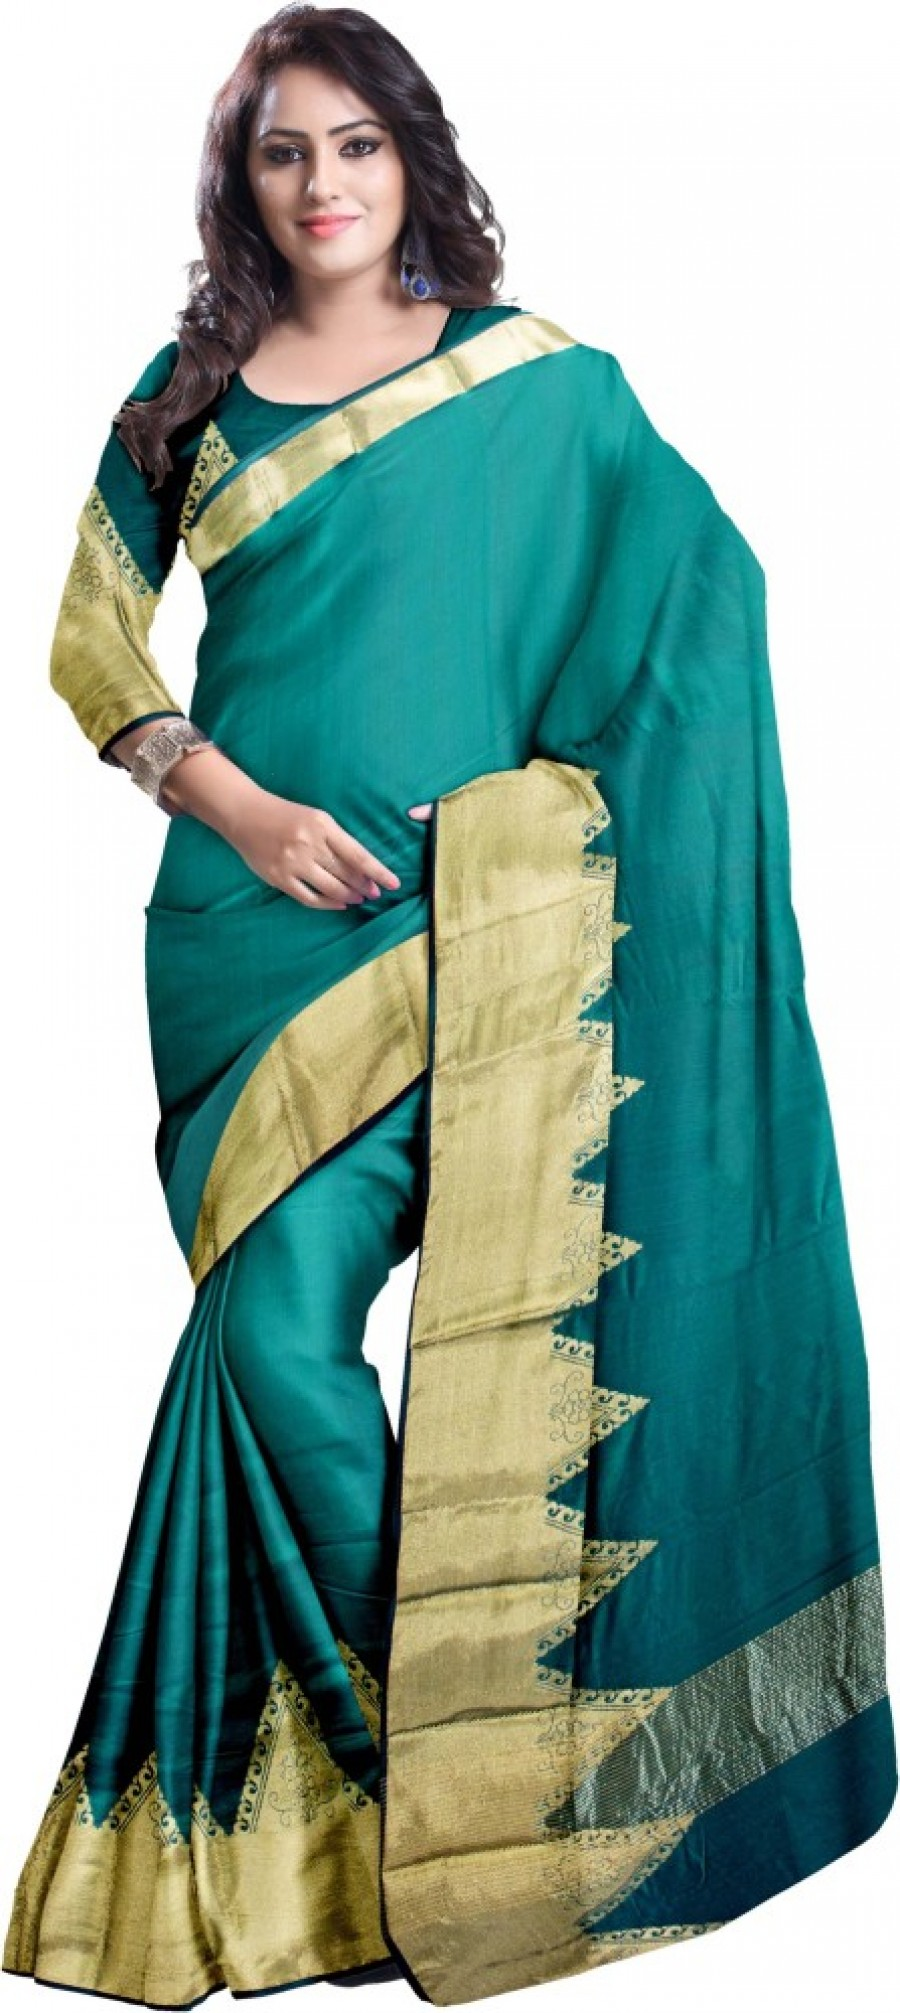 Buy Komal Sarees Woven, Self Design Chanderi Chanderi, Art Silk Sari Online